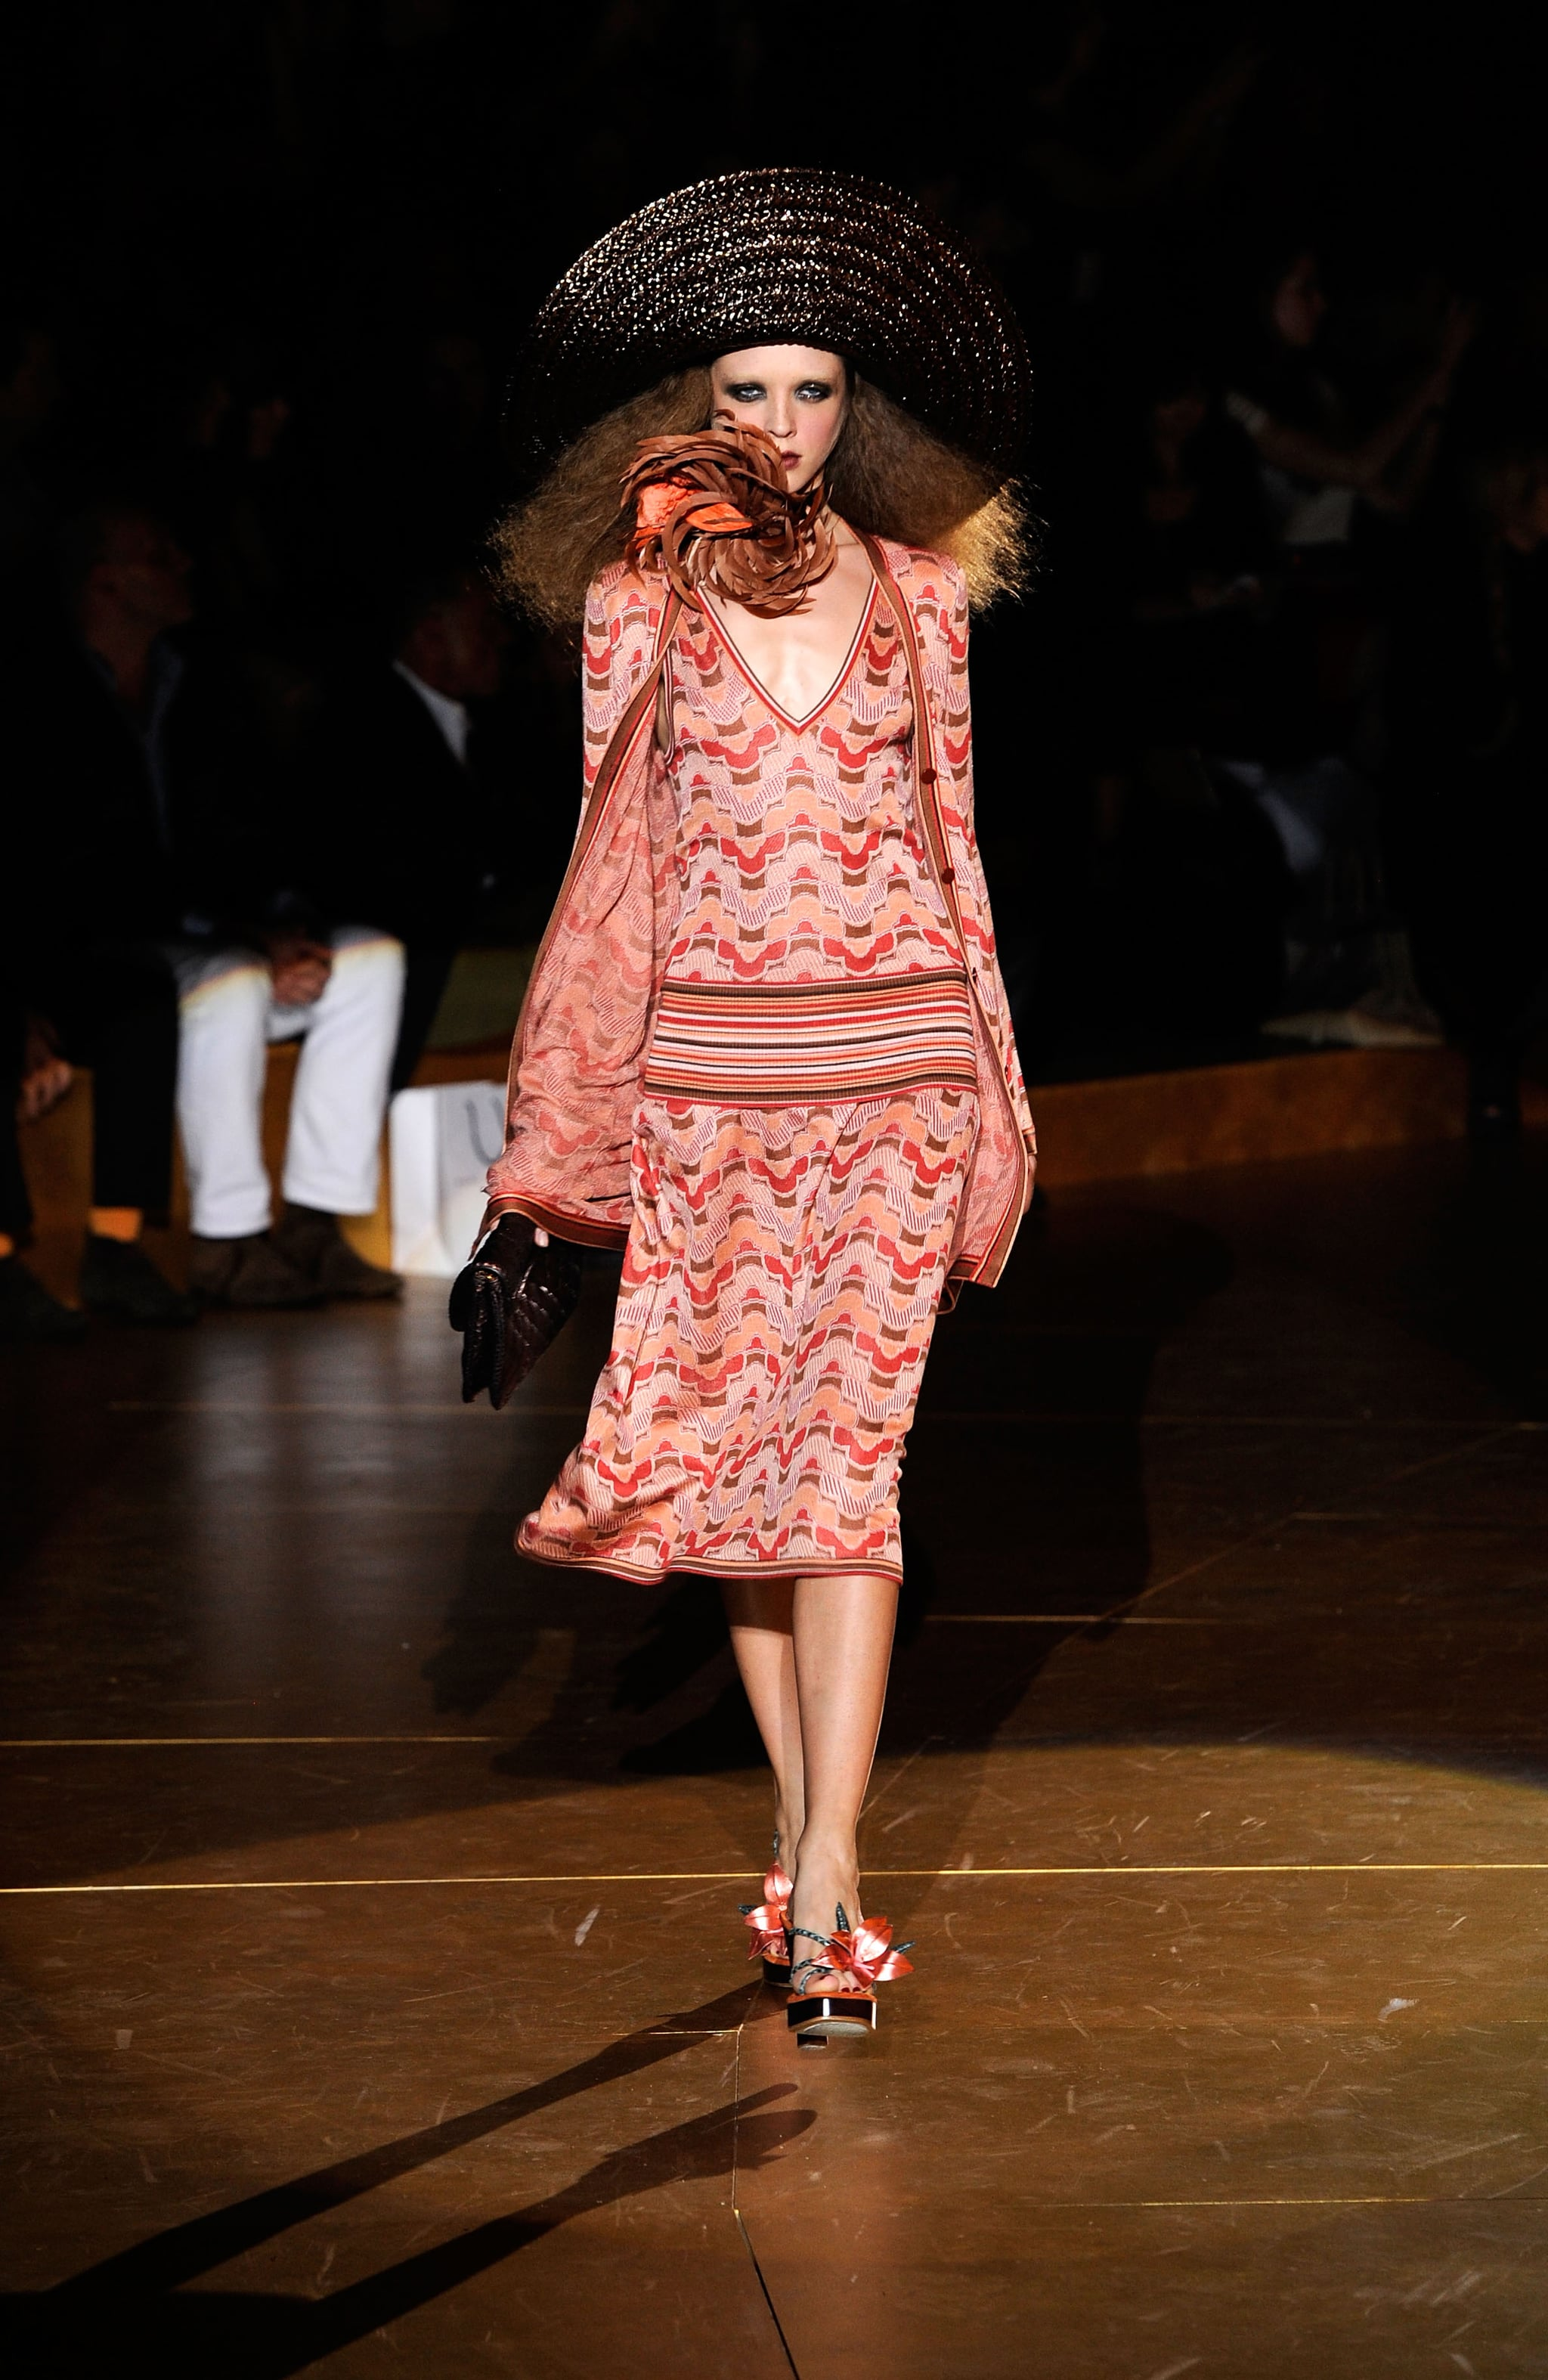 Photos of Marc Jacobs Spring 2011 Catwalk Collection ...